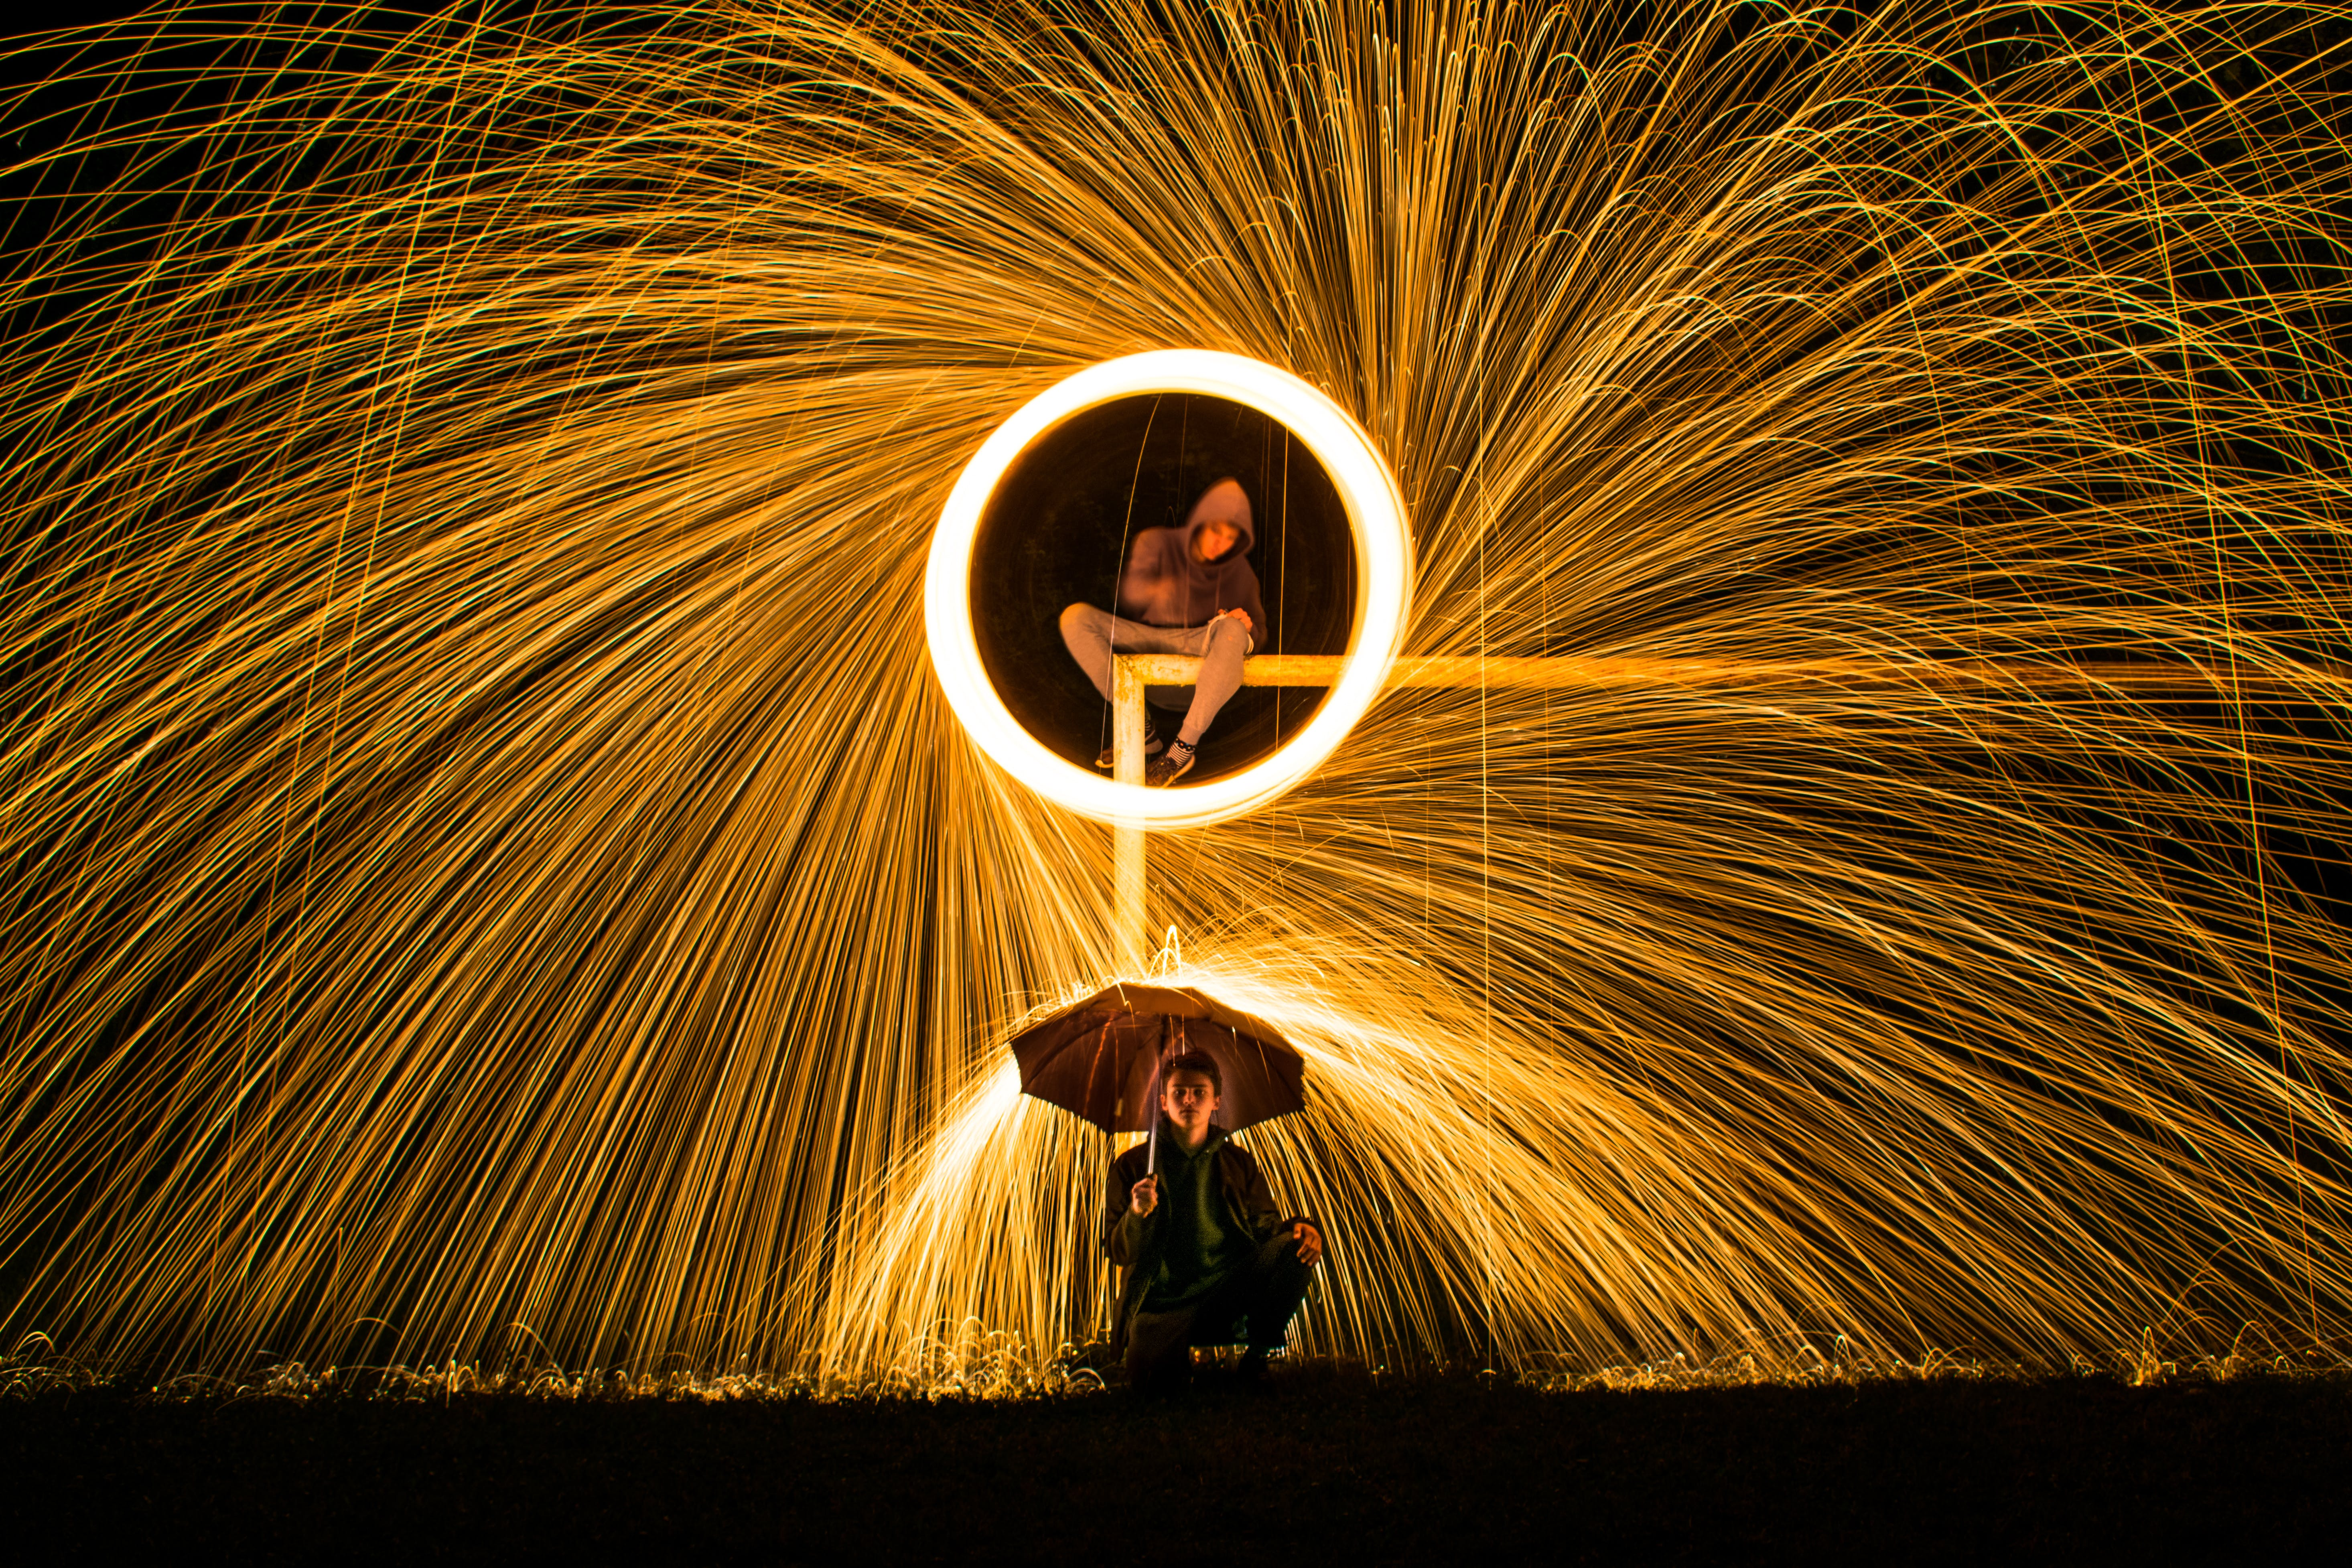 Time Lapse Photography of Person Making Firework Spark Under Person Holding Umbrella during Nighttime